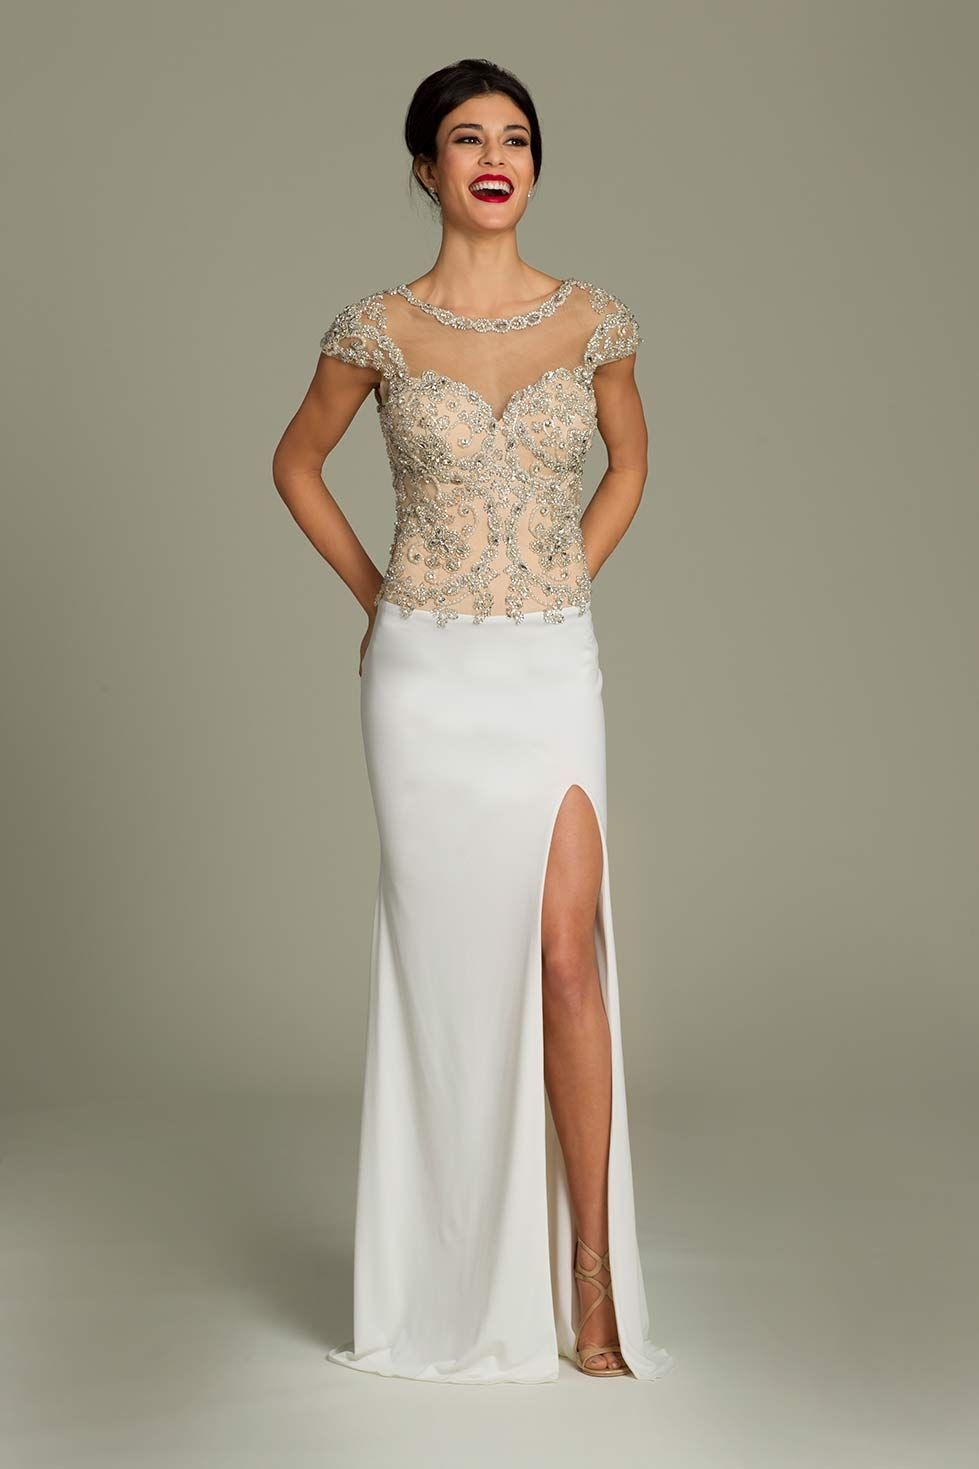 Jovani jovani dress mother of the bride dresses